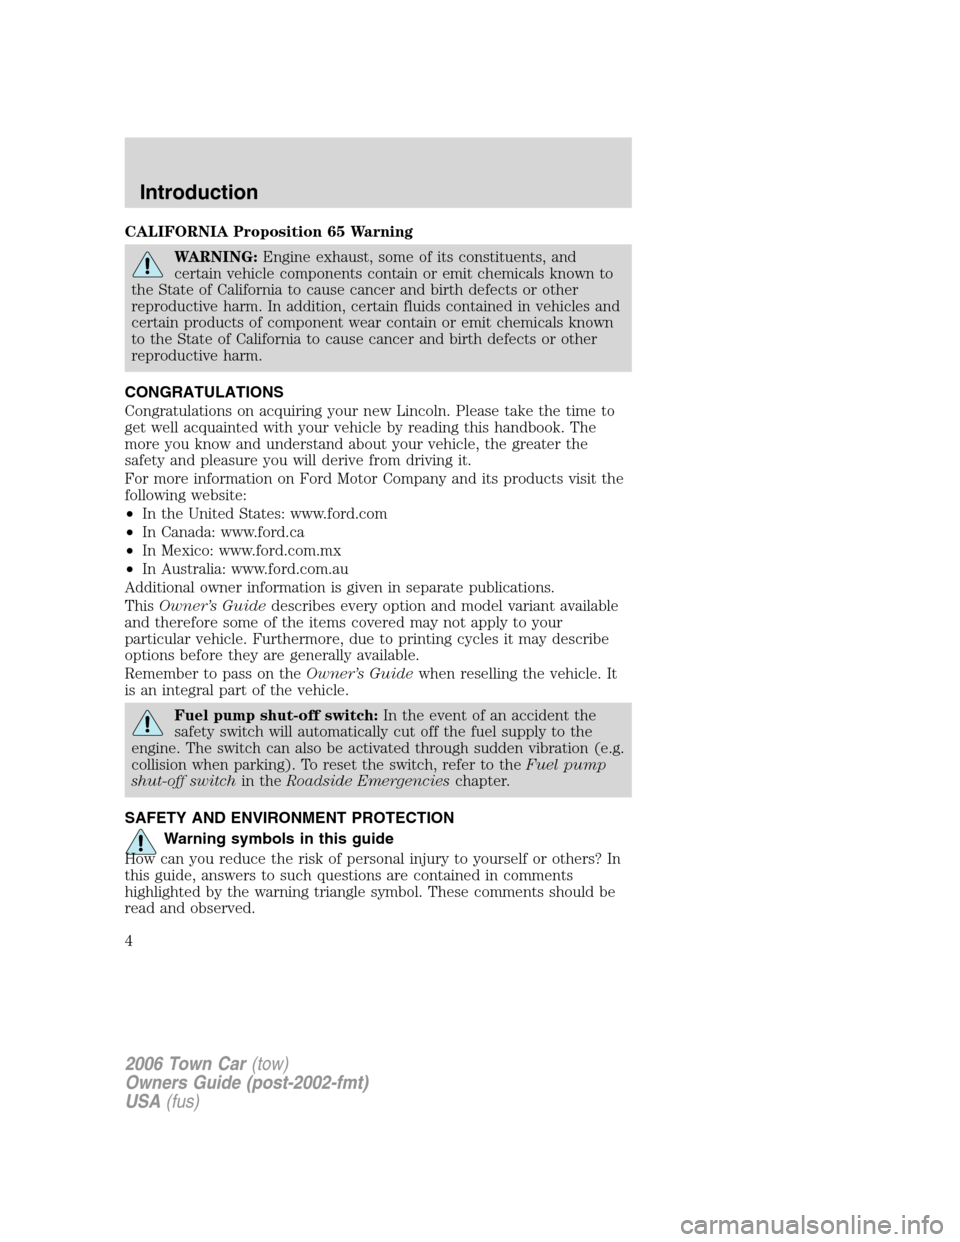 LINCOLN TOWN CAR 2006  Owners Manual, Page 4